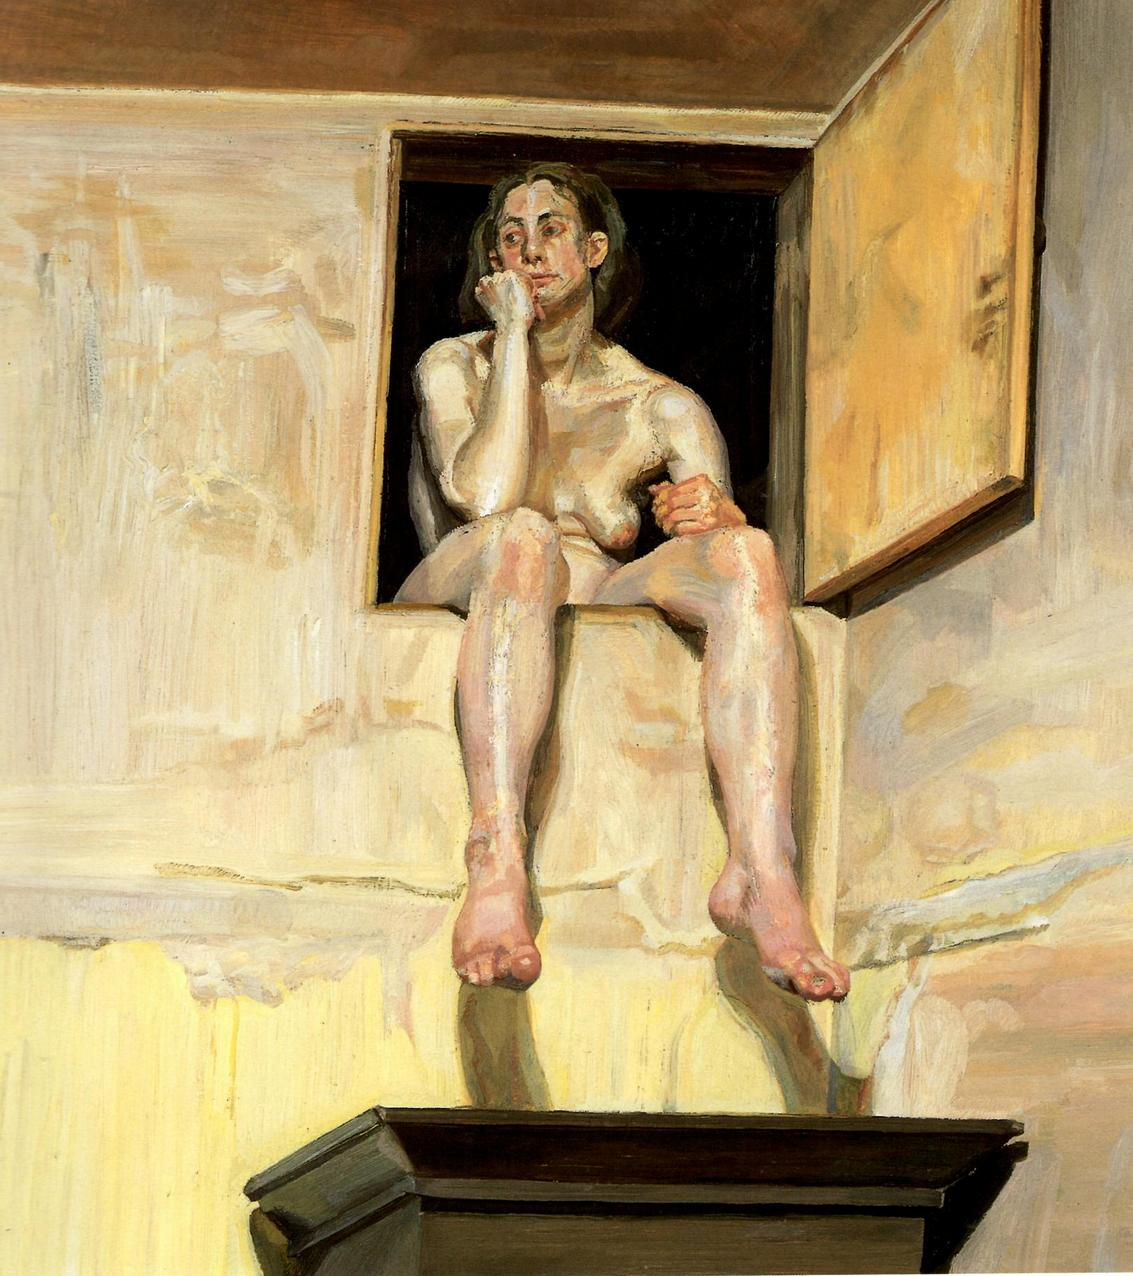 girl-sitting-in-the-attic-doorway.jpg